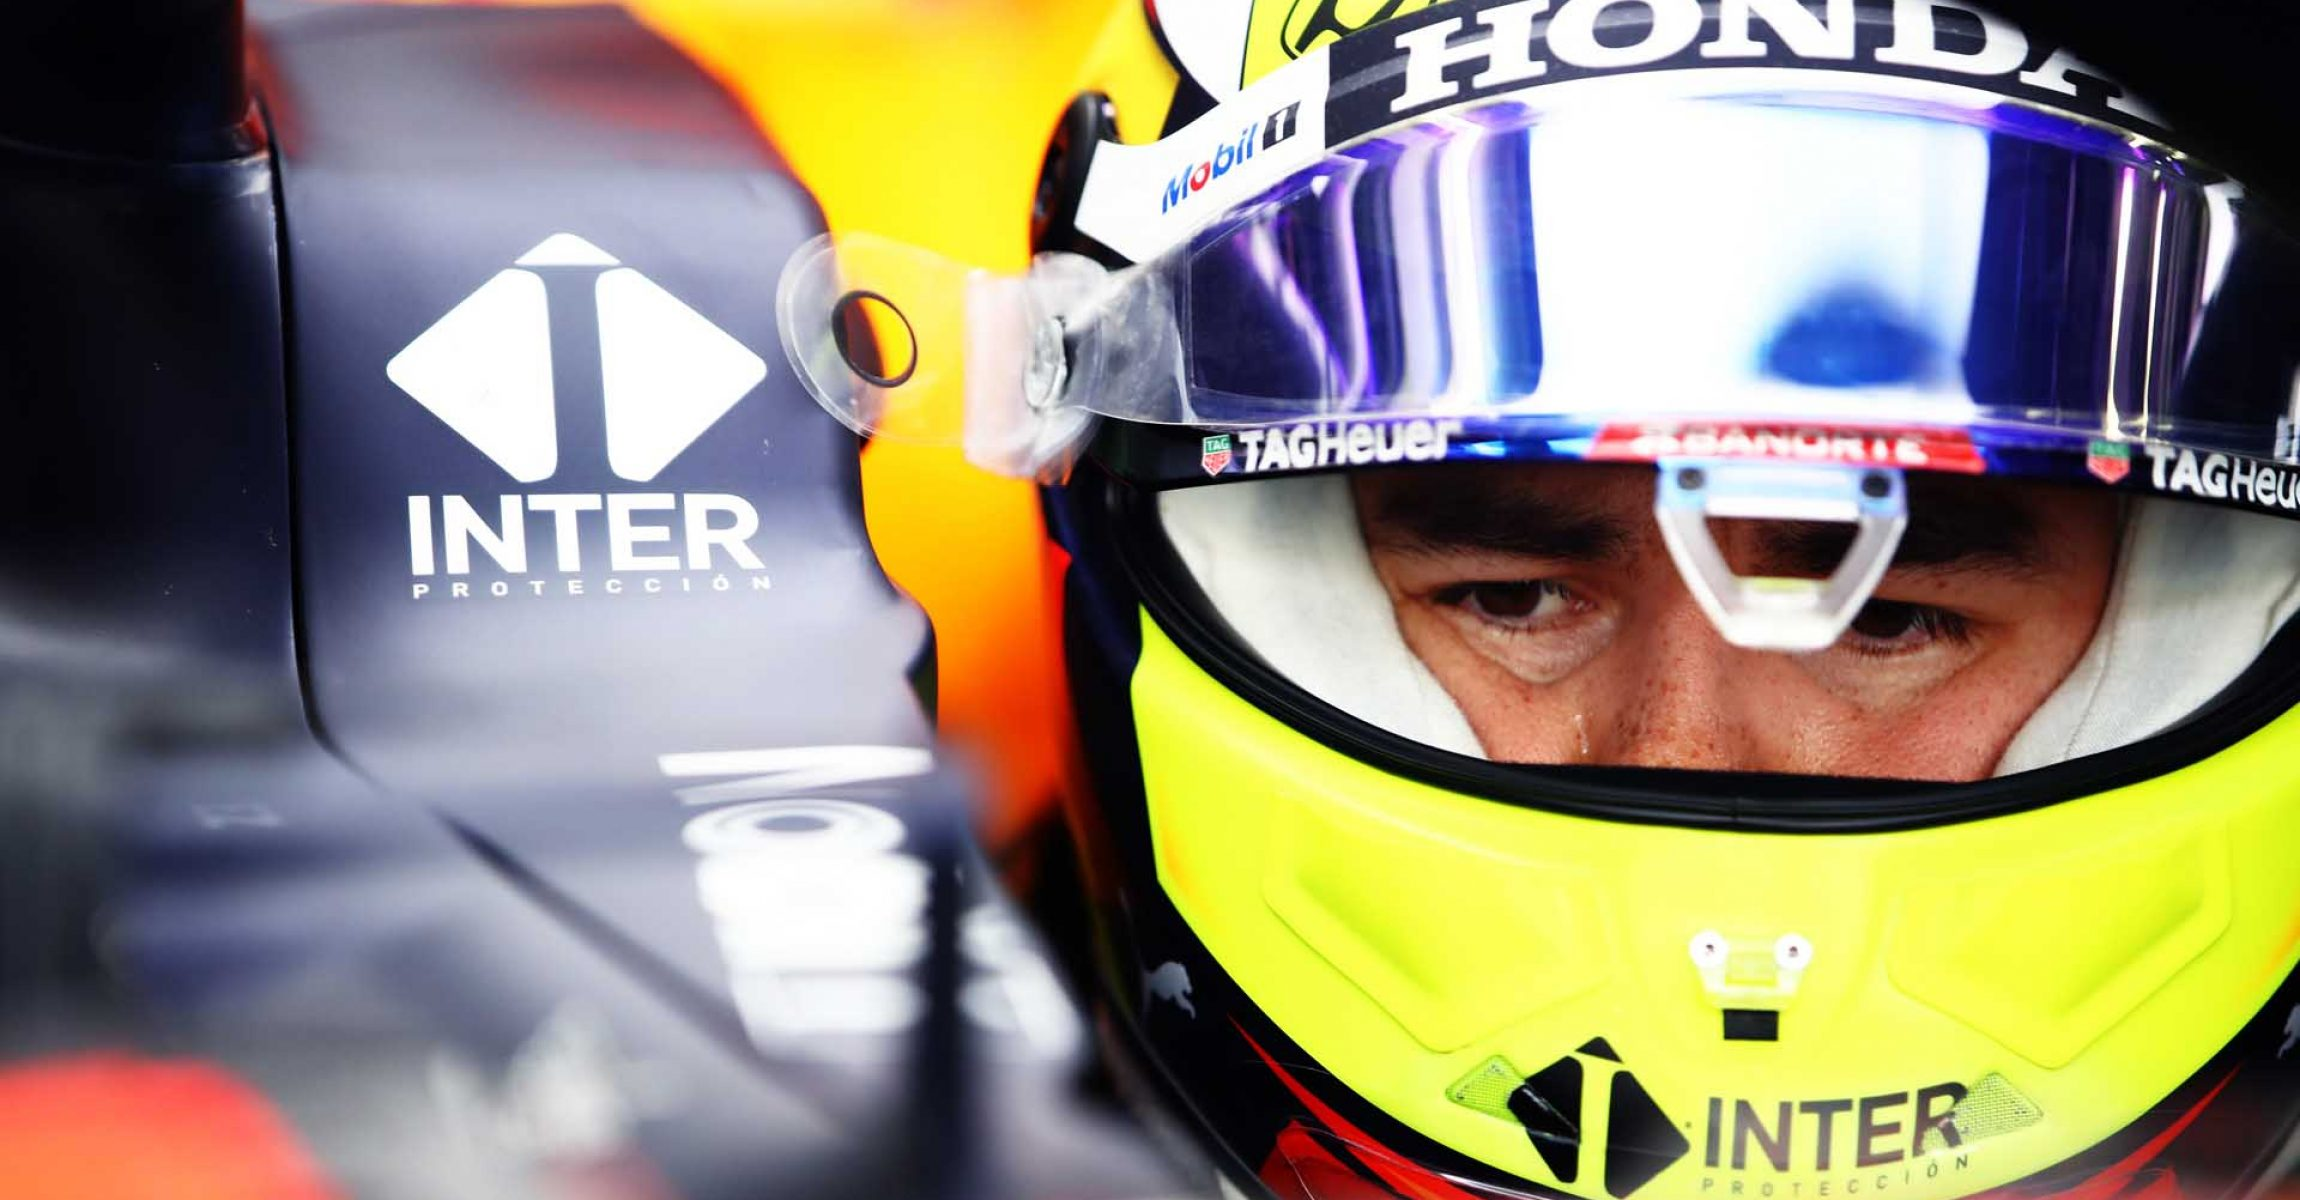 BAHRAIN, BAHRAIN - MARCH 13: Sergio Perez of Mexico and Red Bull Racing prepares to drive in the garage during Day Two of F1 Testing at Bahrain International Circuit on March 13, 2021 in Bahrain, Bahrain. (Photo by Mark Thompson/Getty Images) // Getty Images / Red Bull Content Pool  // SI202103130092 // Usage for editorial use only //